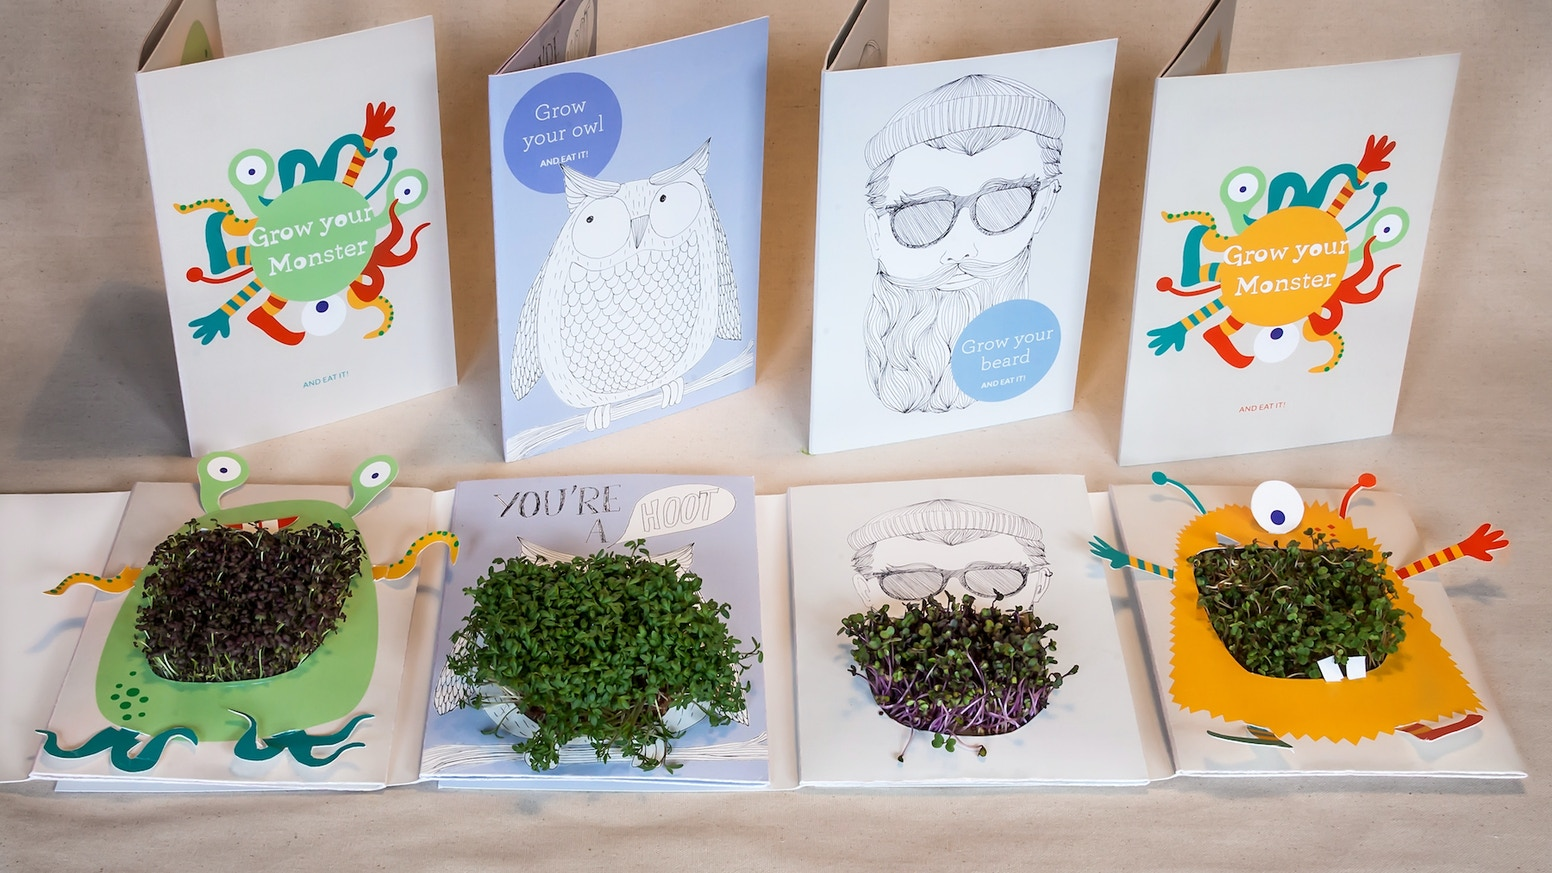 Share the fun of play with nature with your loved ones and send them Growing Greetings: original cards that grow edible microgreens.